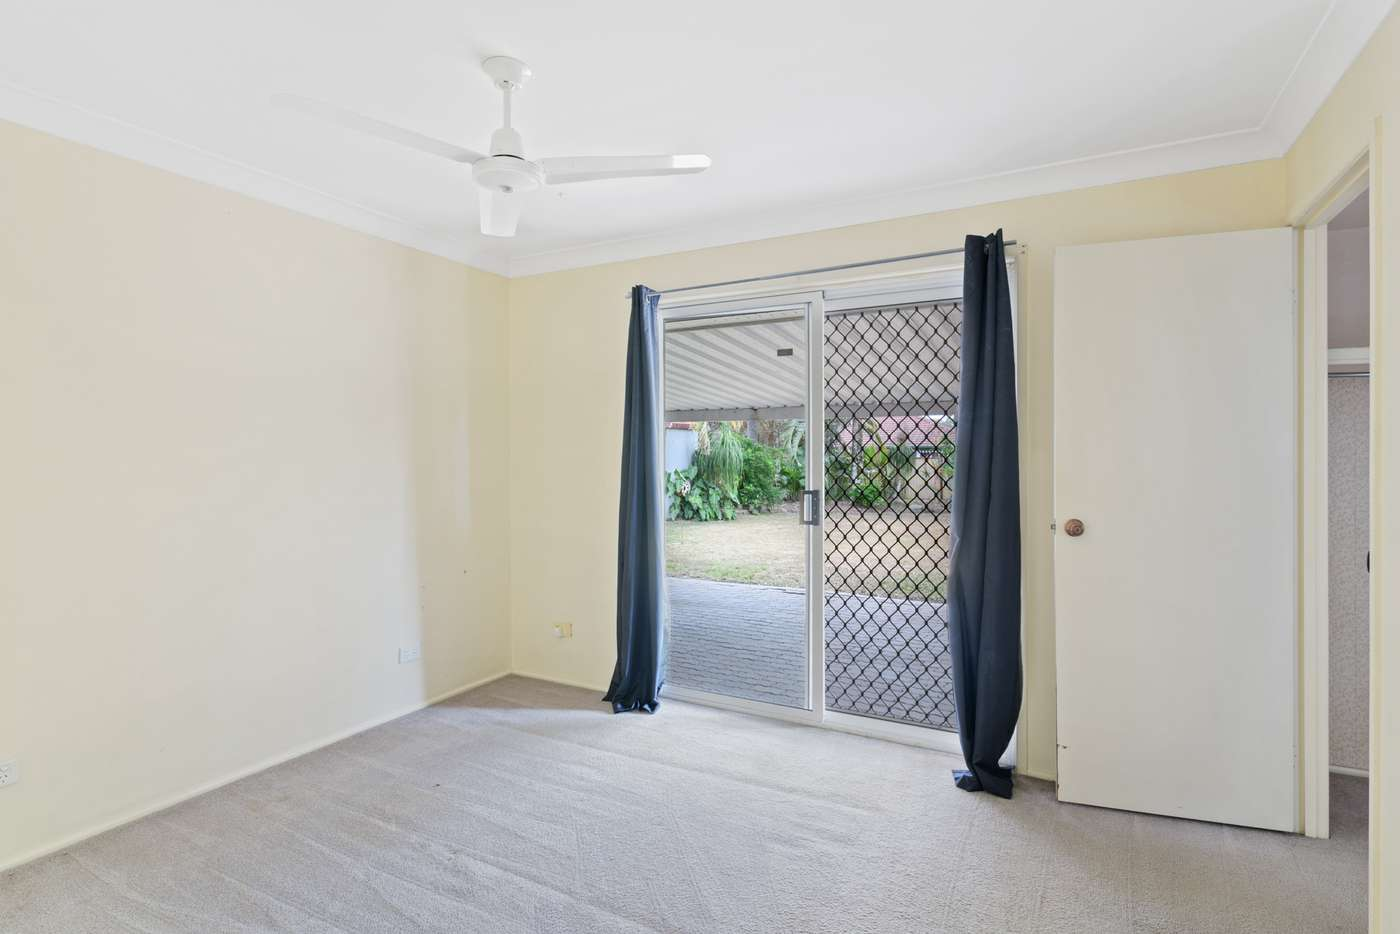 Sixth view of Homely house listing, 45 Federation Drive, Bethania QLD 4205